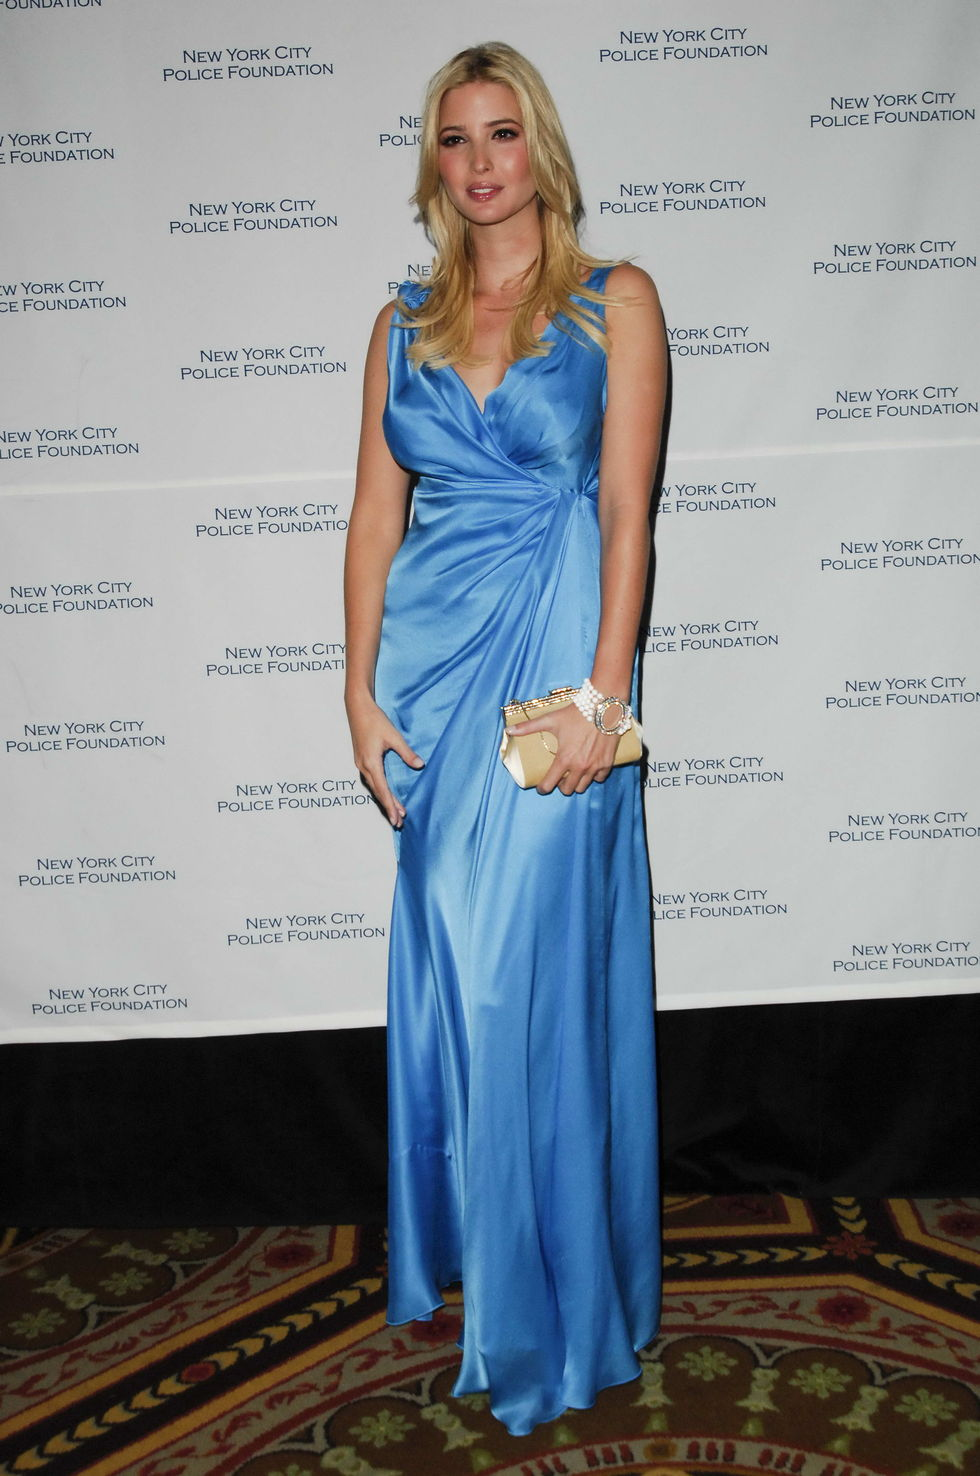 ivanka-trump-30th-annual-new-york-city-police-foundation-gala-01